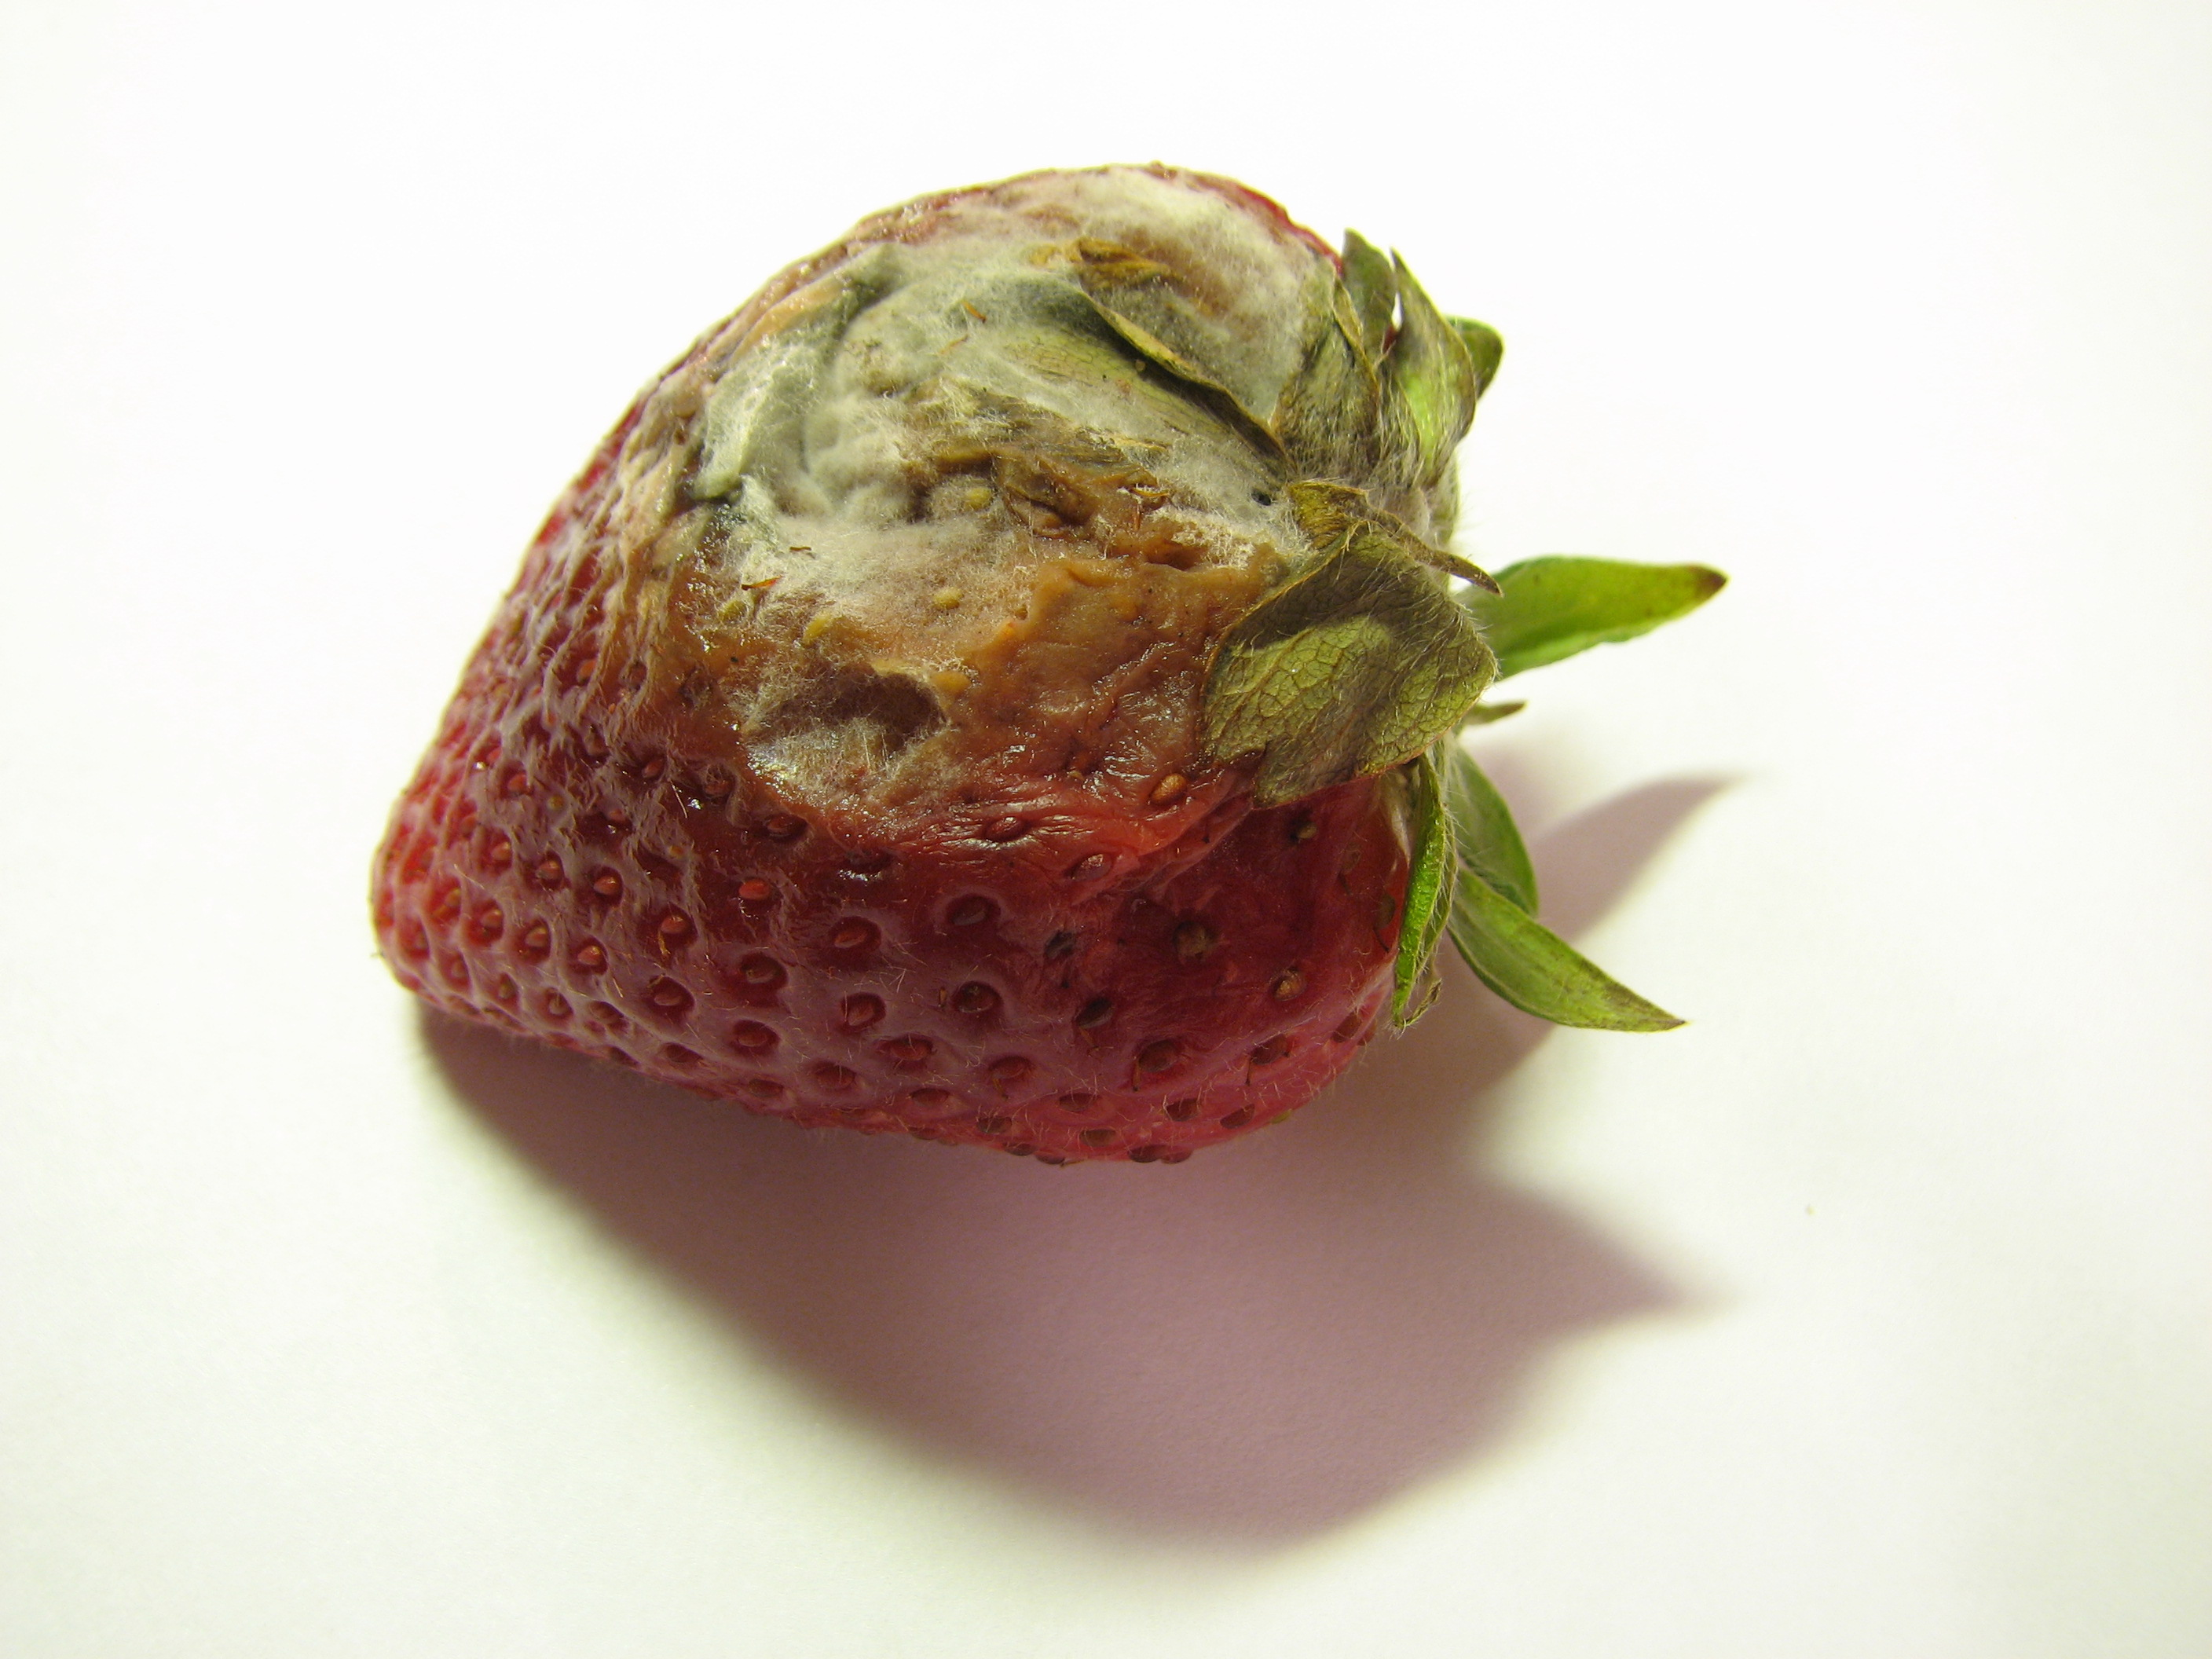 Rotten Strawberries File:Rotting strawberr...